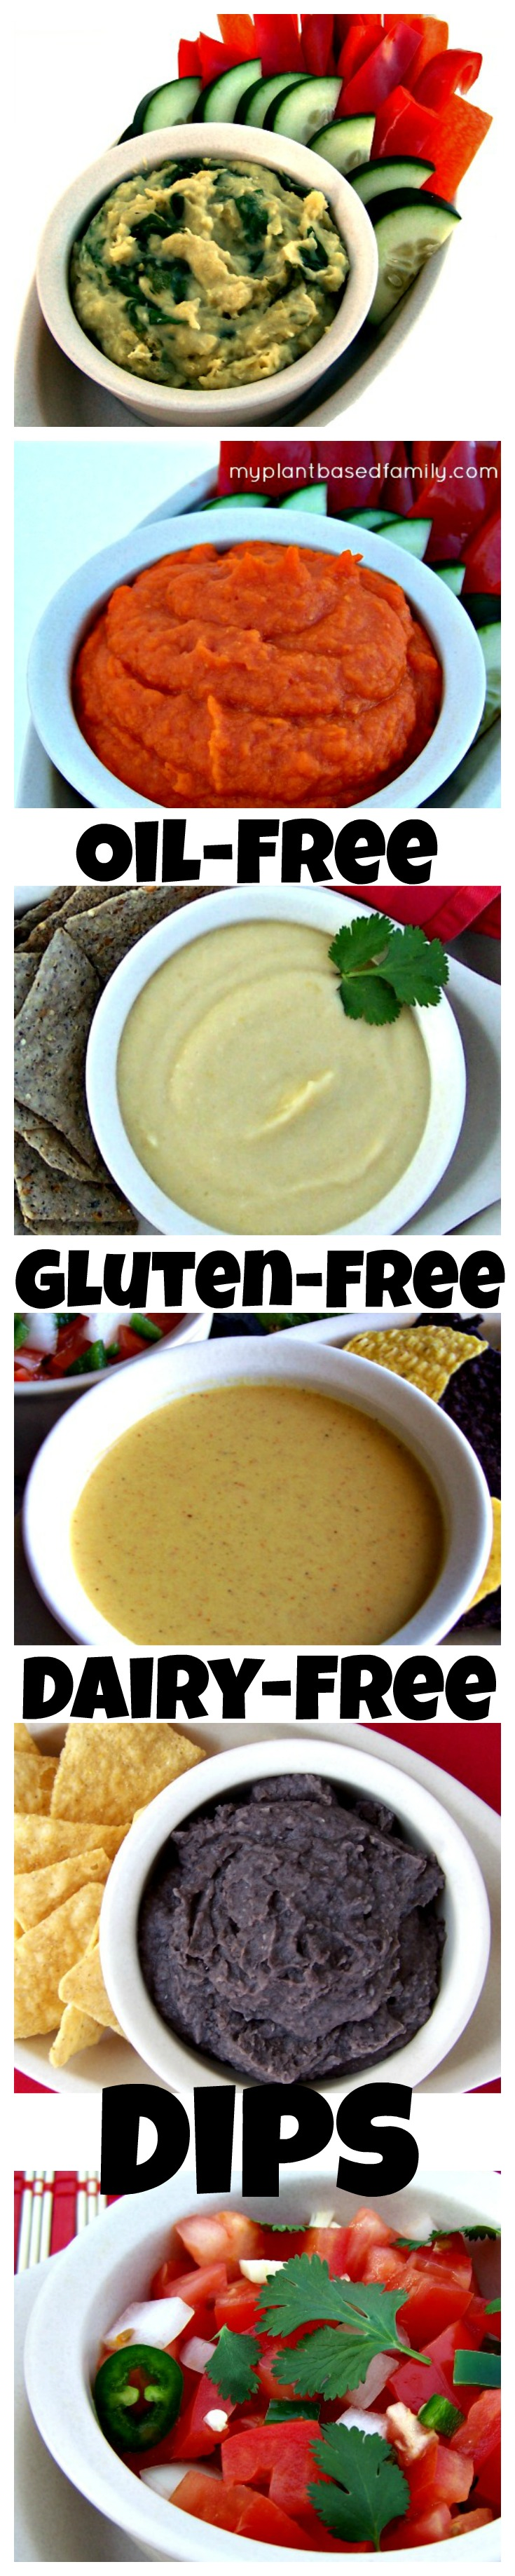 Oil-Free, Gluten-Free Vegan Dips that are easy to make and delicious!